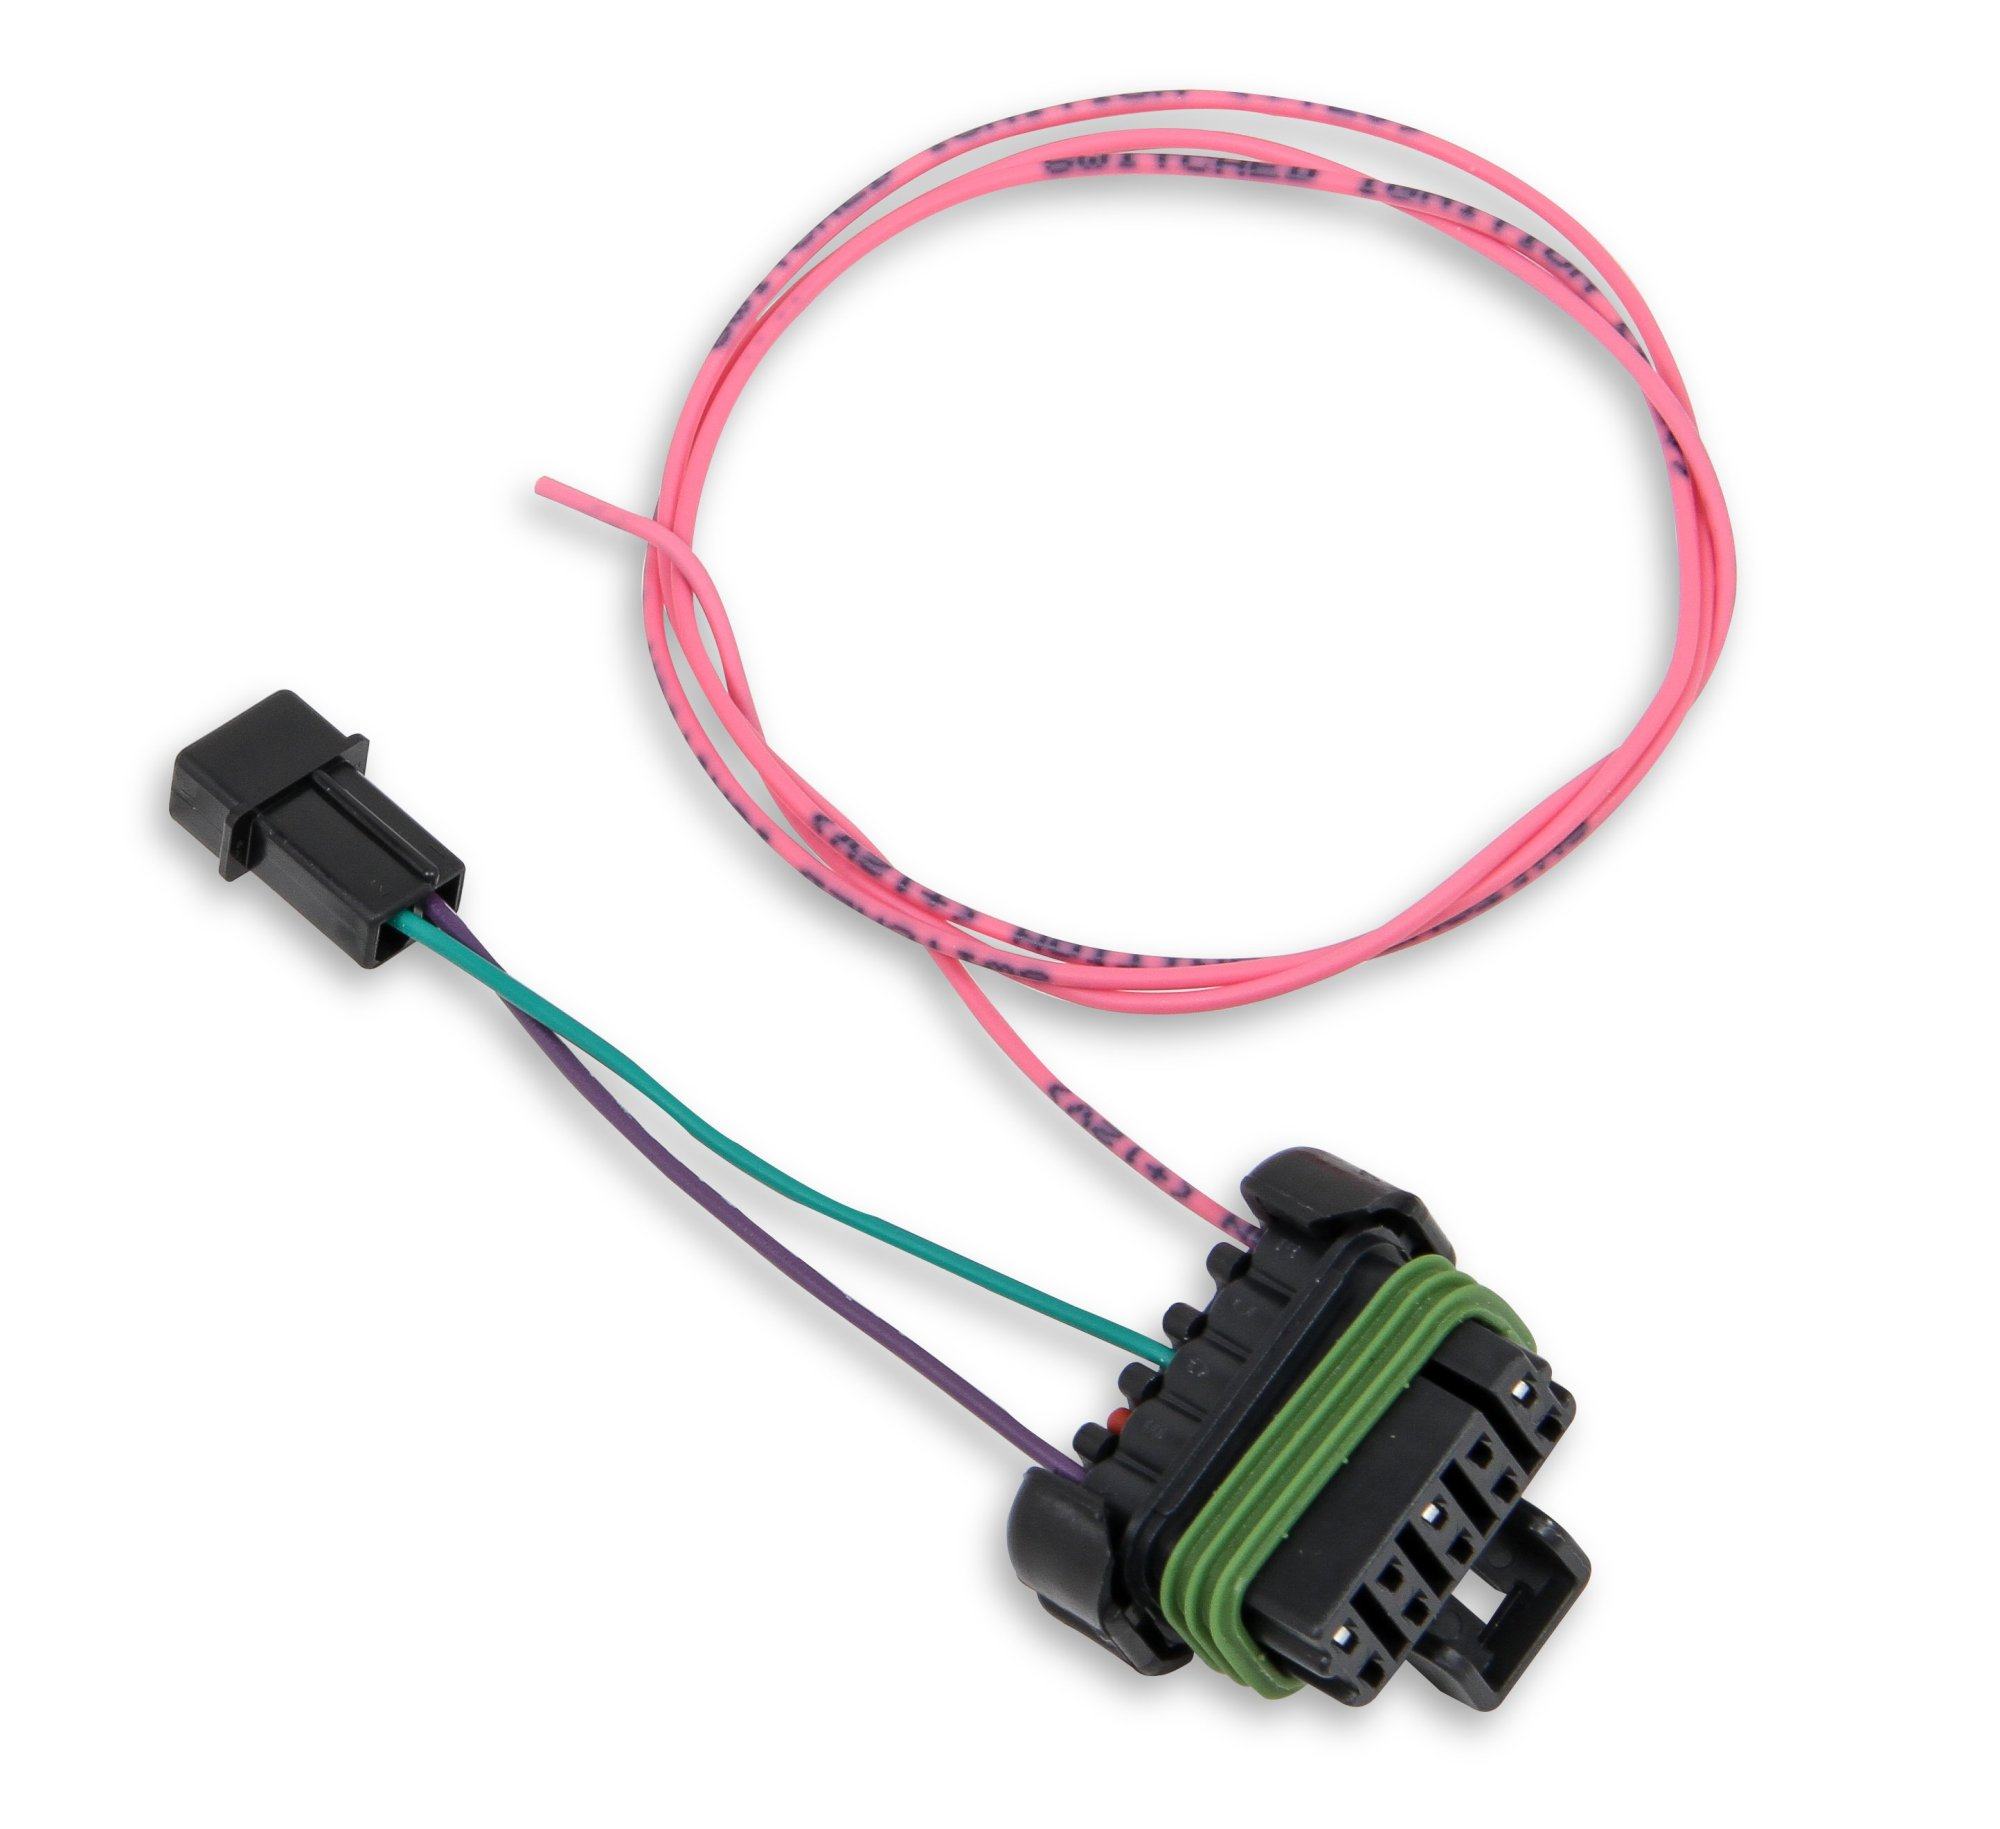 hight resolution of sniper efi to holley efi dual sync distributor adapter harness